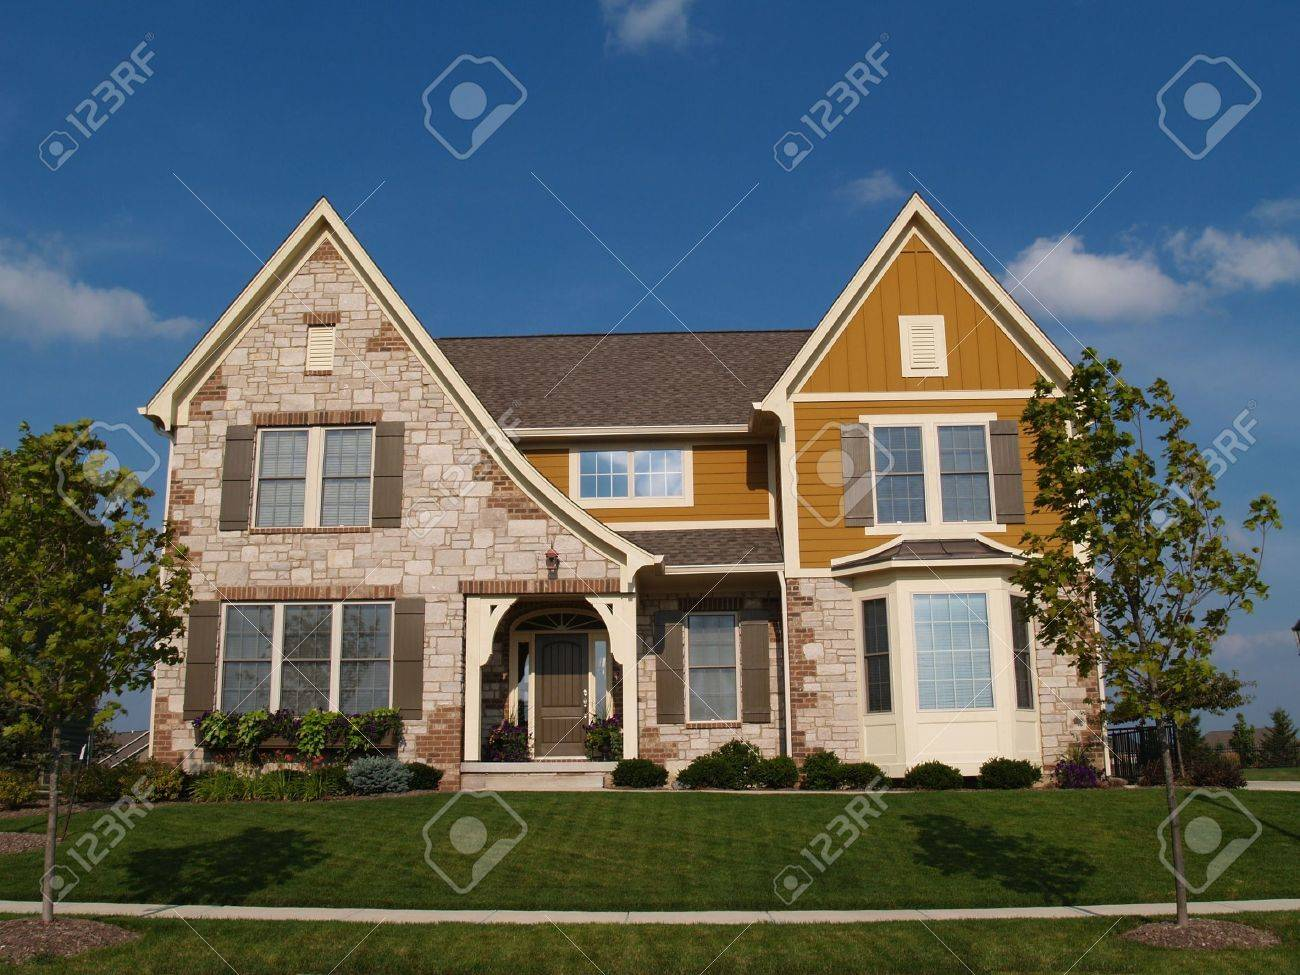 Two story stone, brick and board sided residential home with bay window. - 5458651